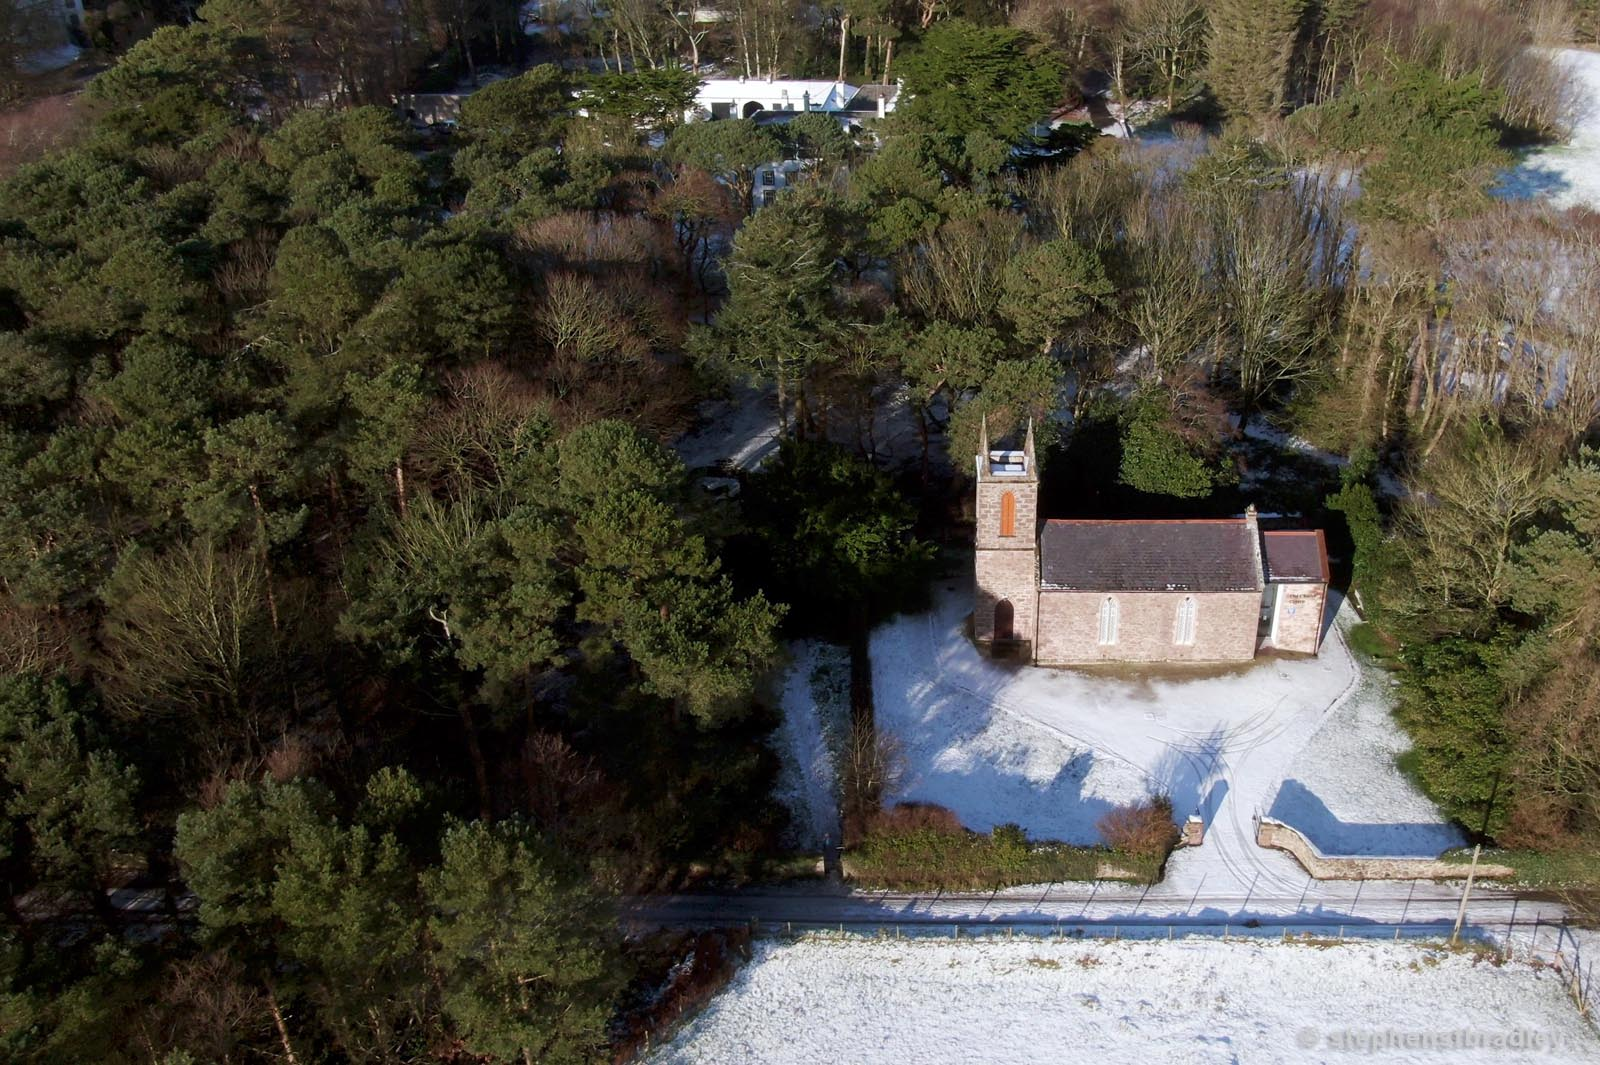 Aerial drone photography and video production services Dublin and Ireland portfolio - Cushendun village under snow in winter, video screenshot 1